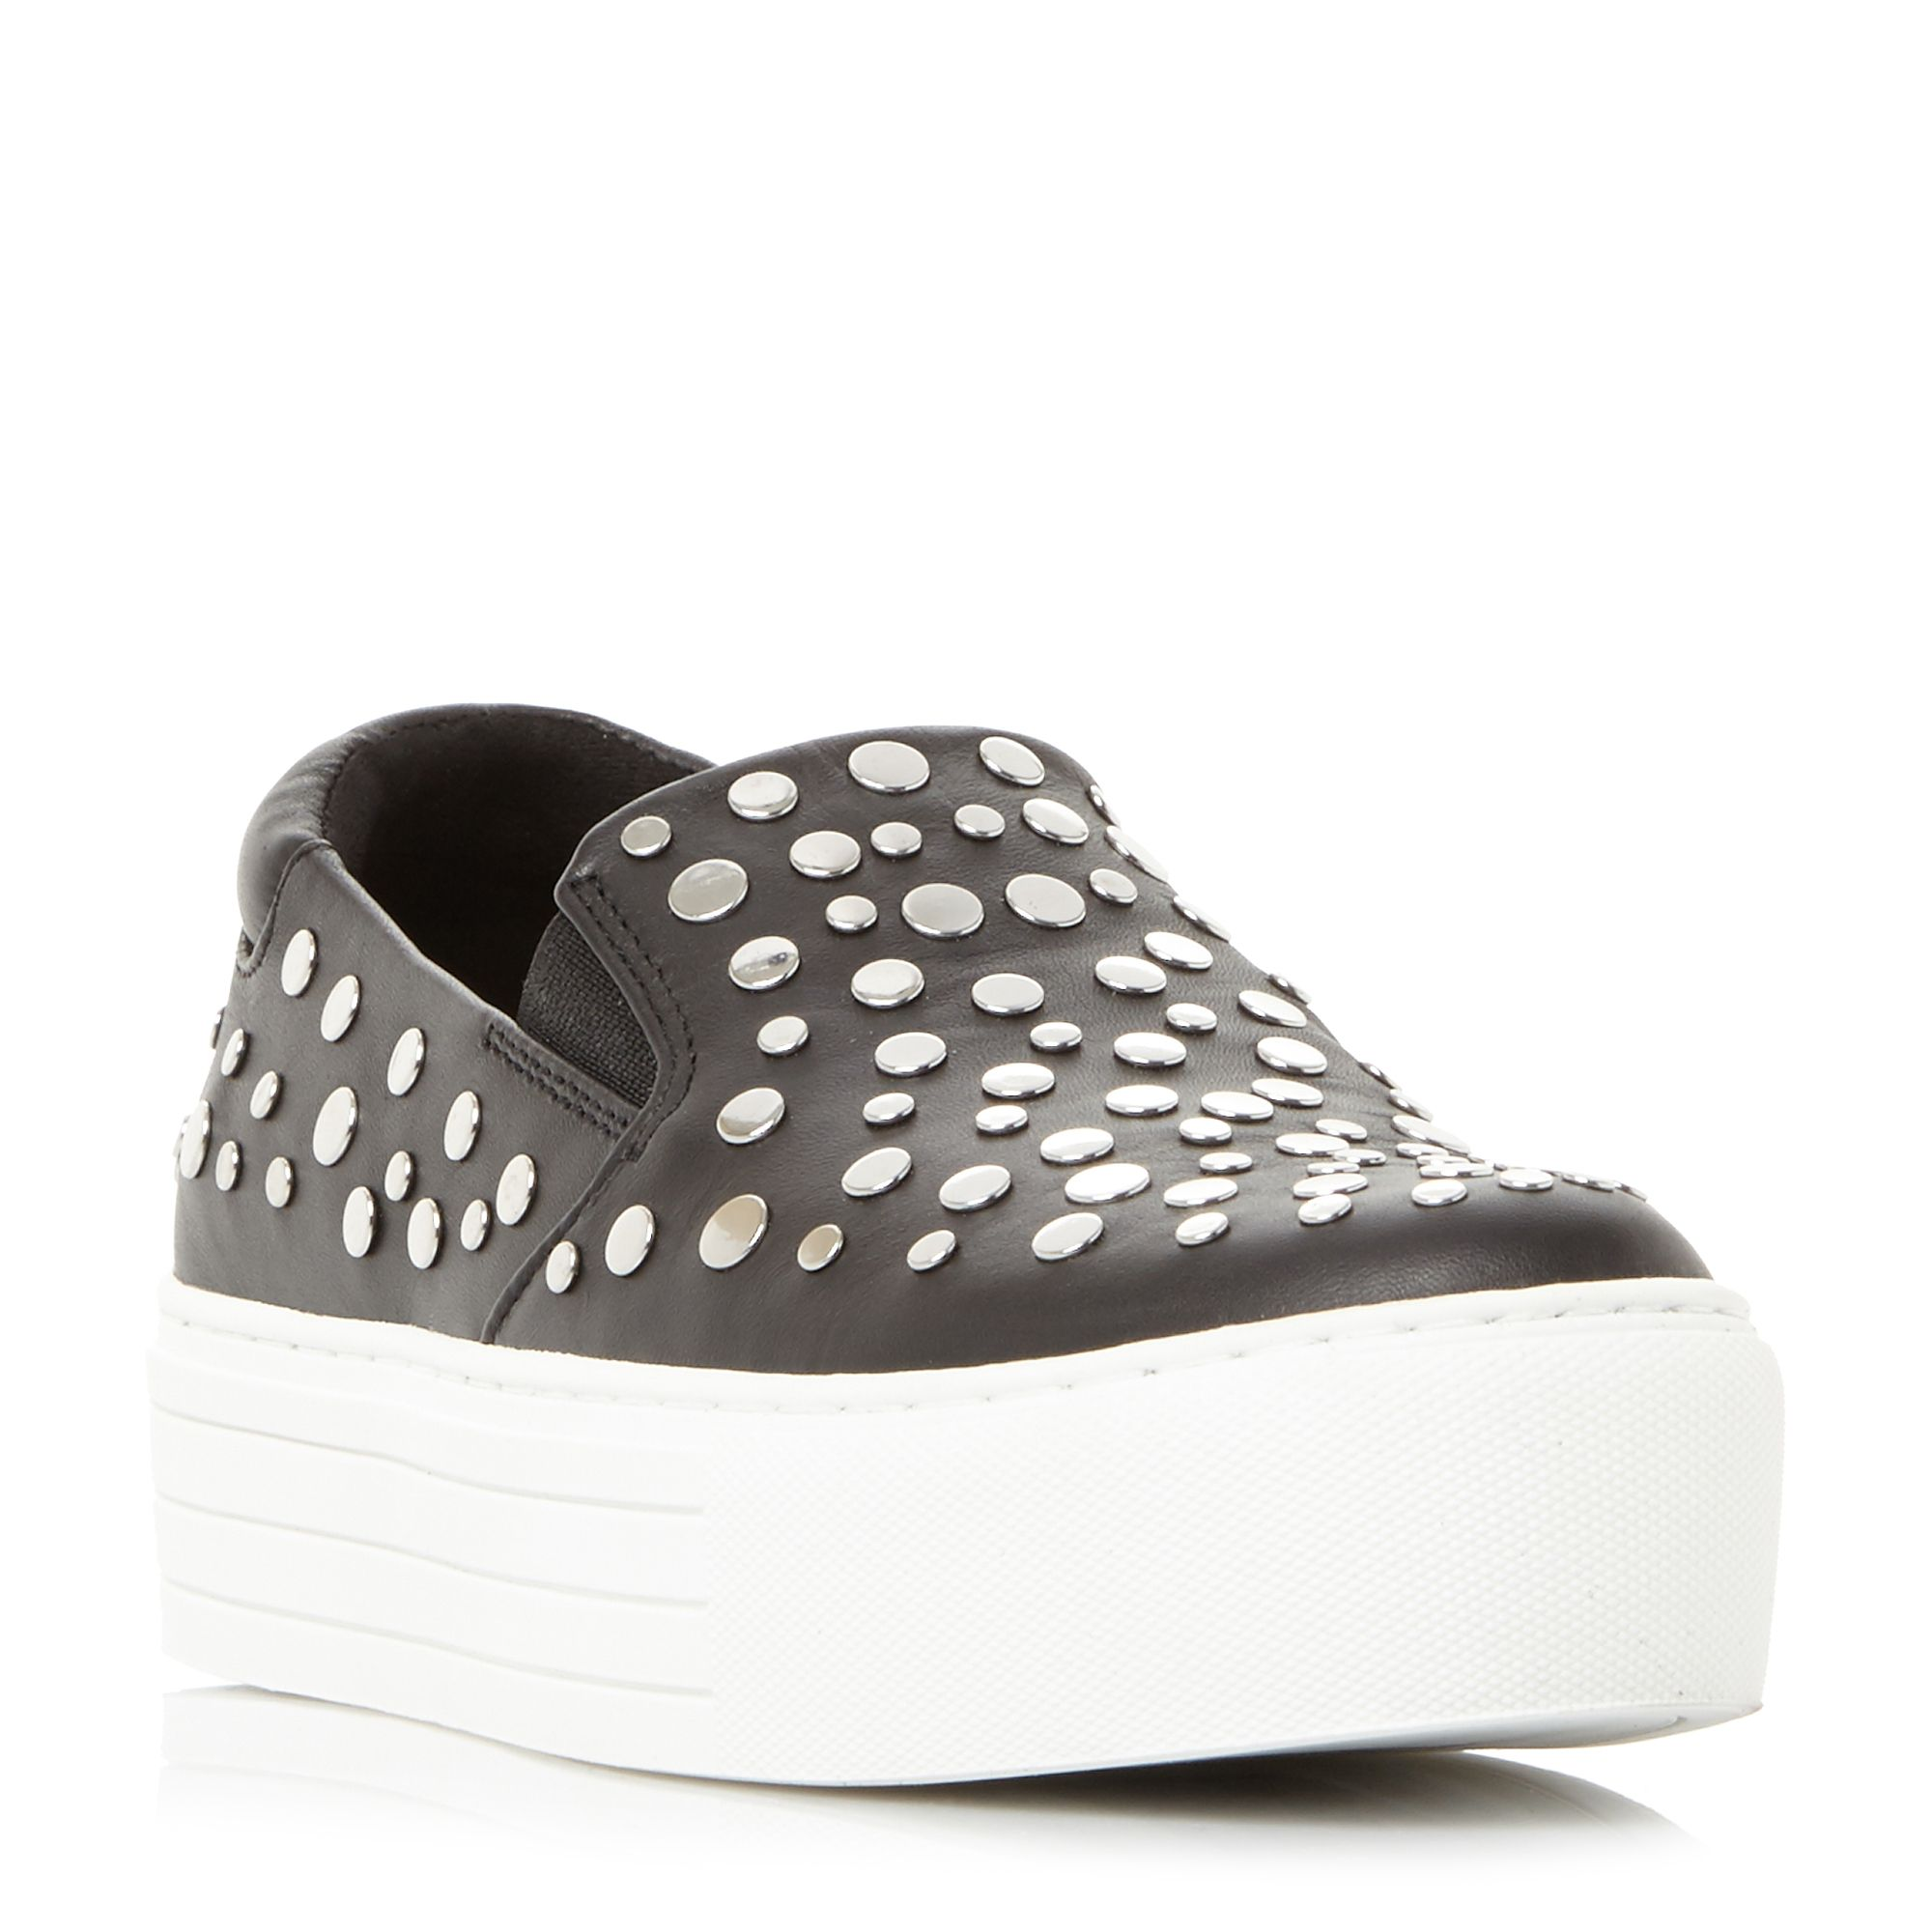 Kenneth Cole Jeyda Stud Slip On Flatform Trainers, Black